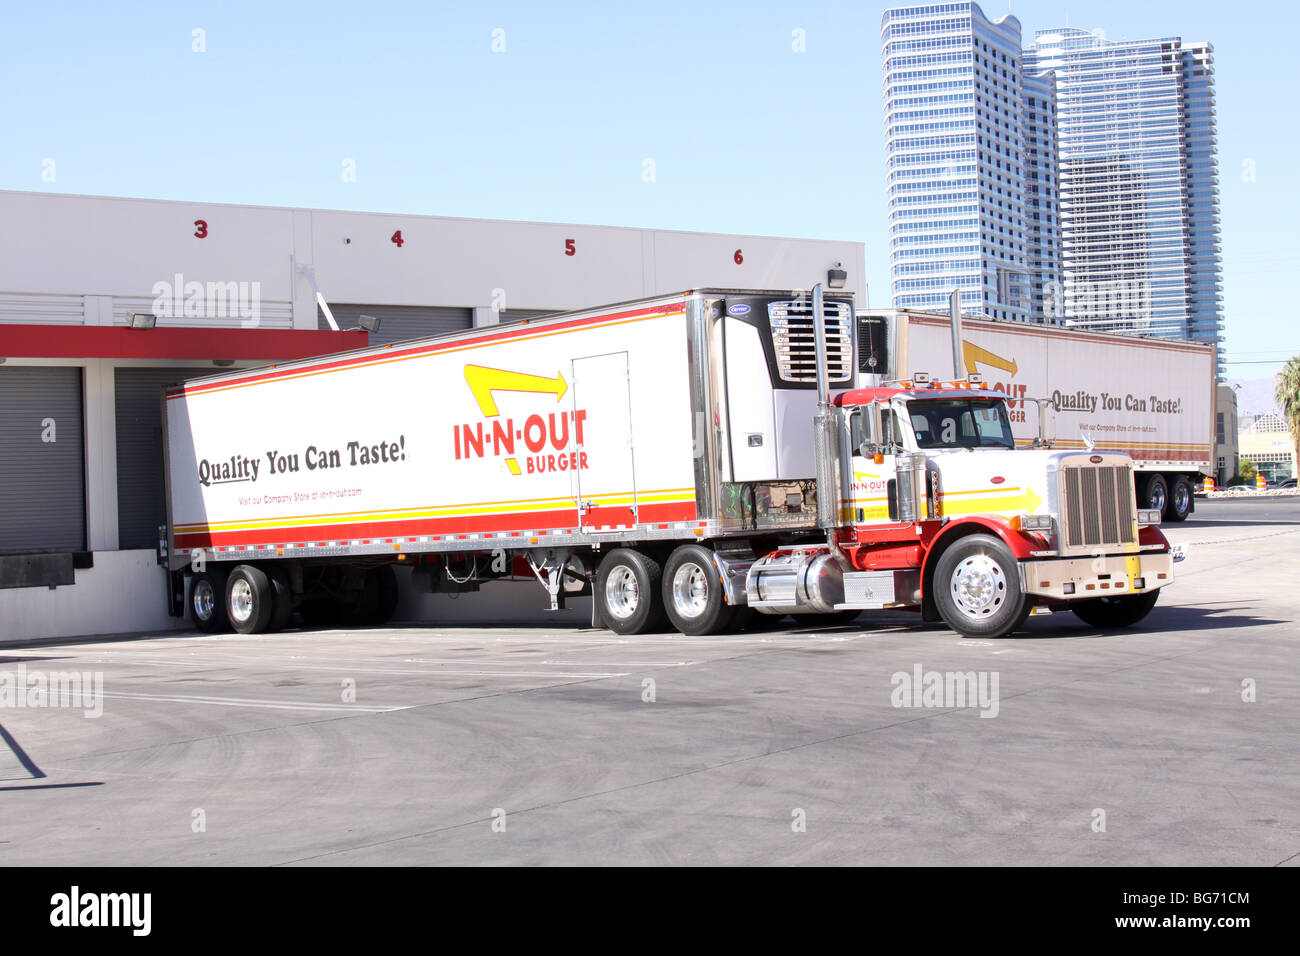 In N Out Burger Truck Stock Photo 27199668 Alamy